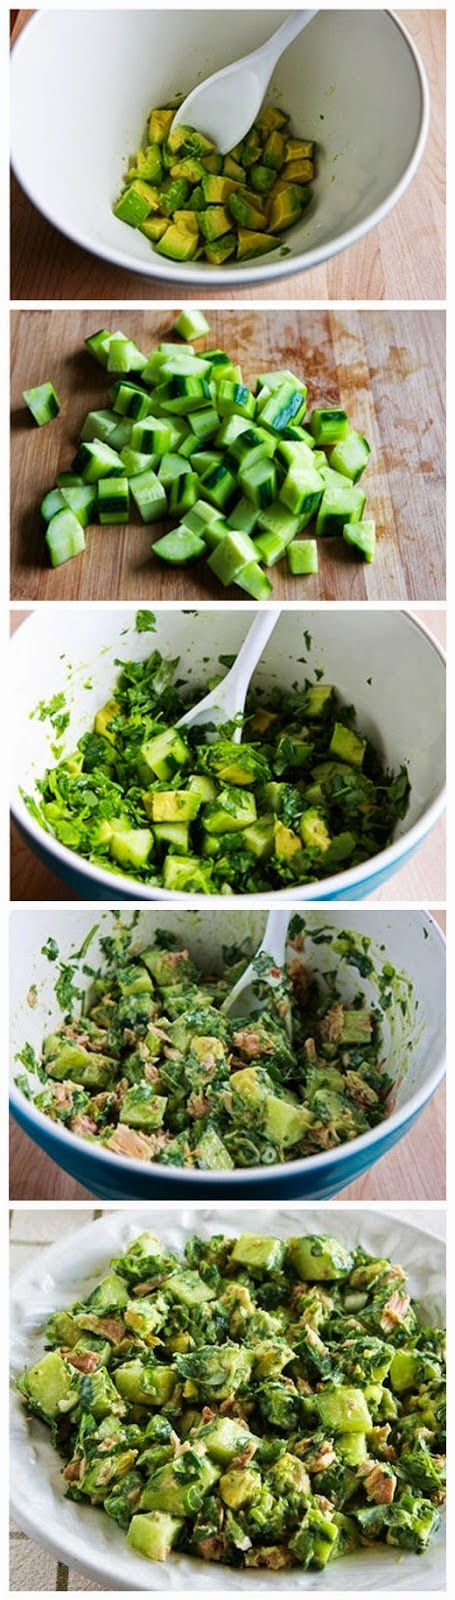 Cucumber Avocado Salad with Tuna, Cilantro, and Lime Replace tuna with chicken